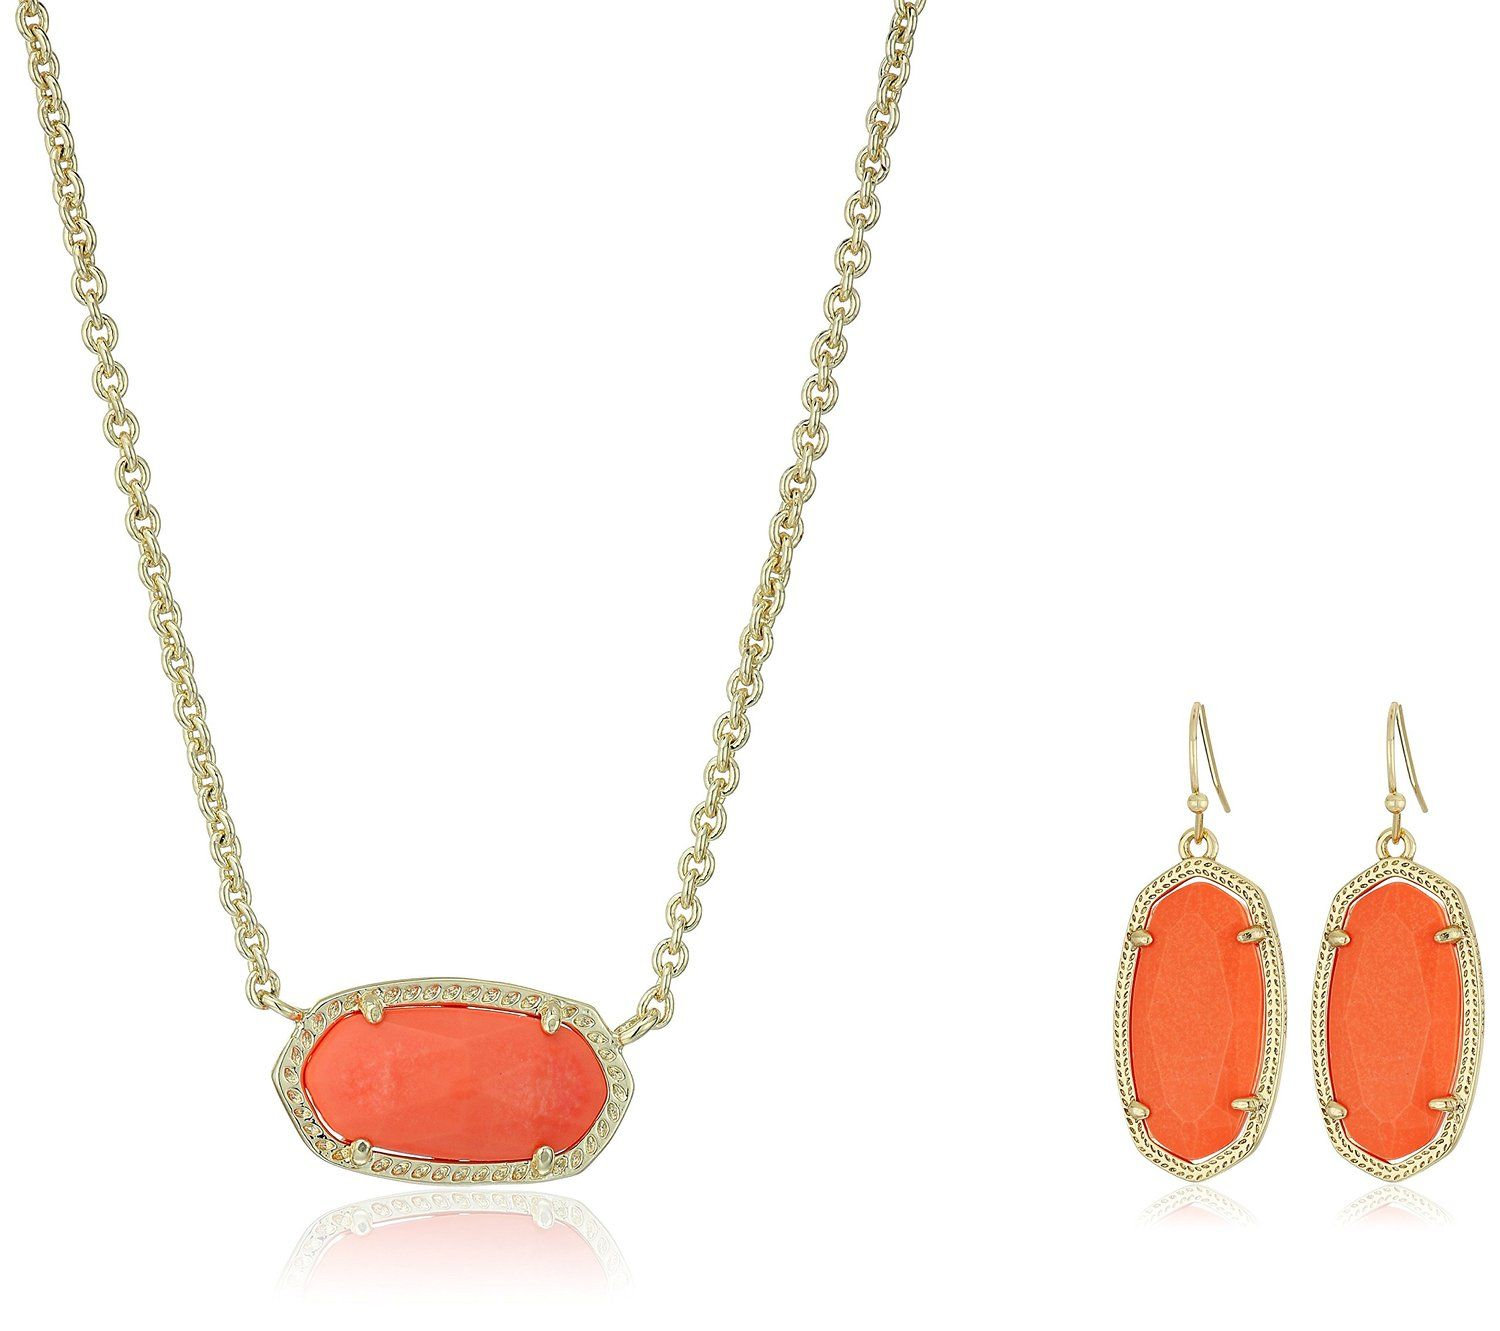 Kendra scott dani elisa earrings and necklace jewelry set read